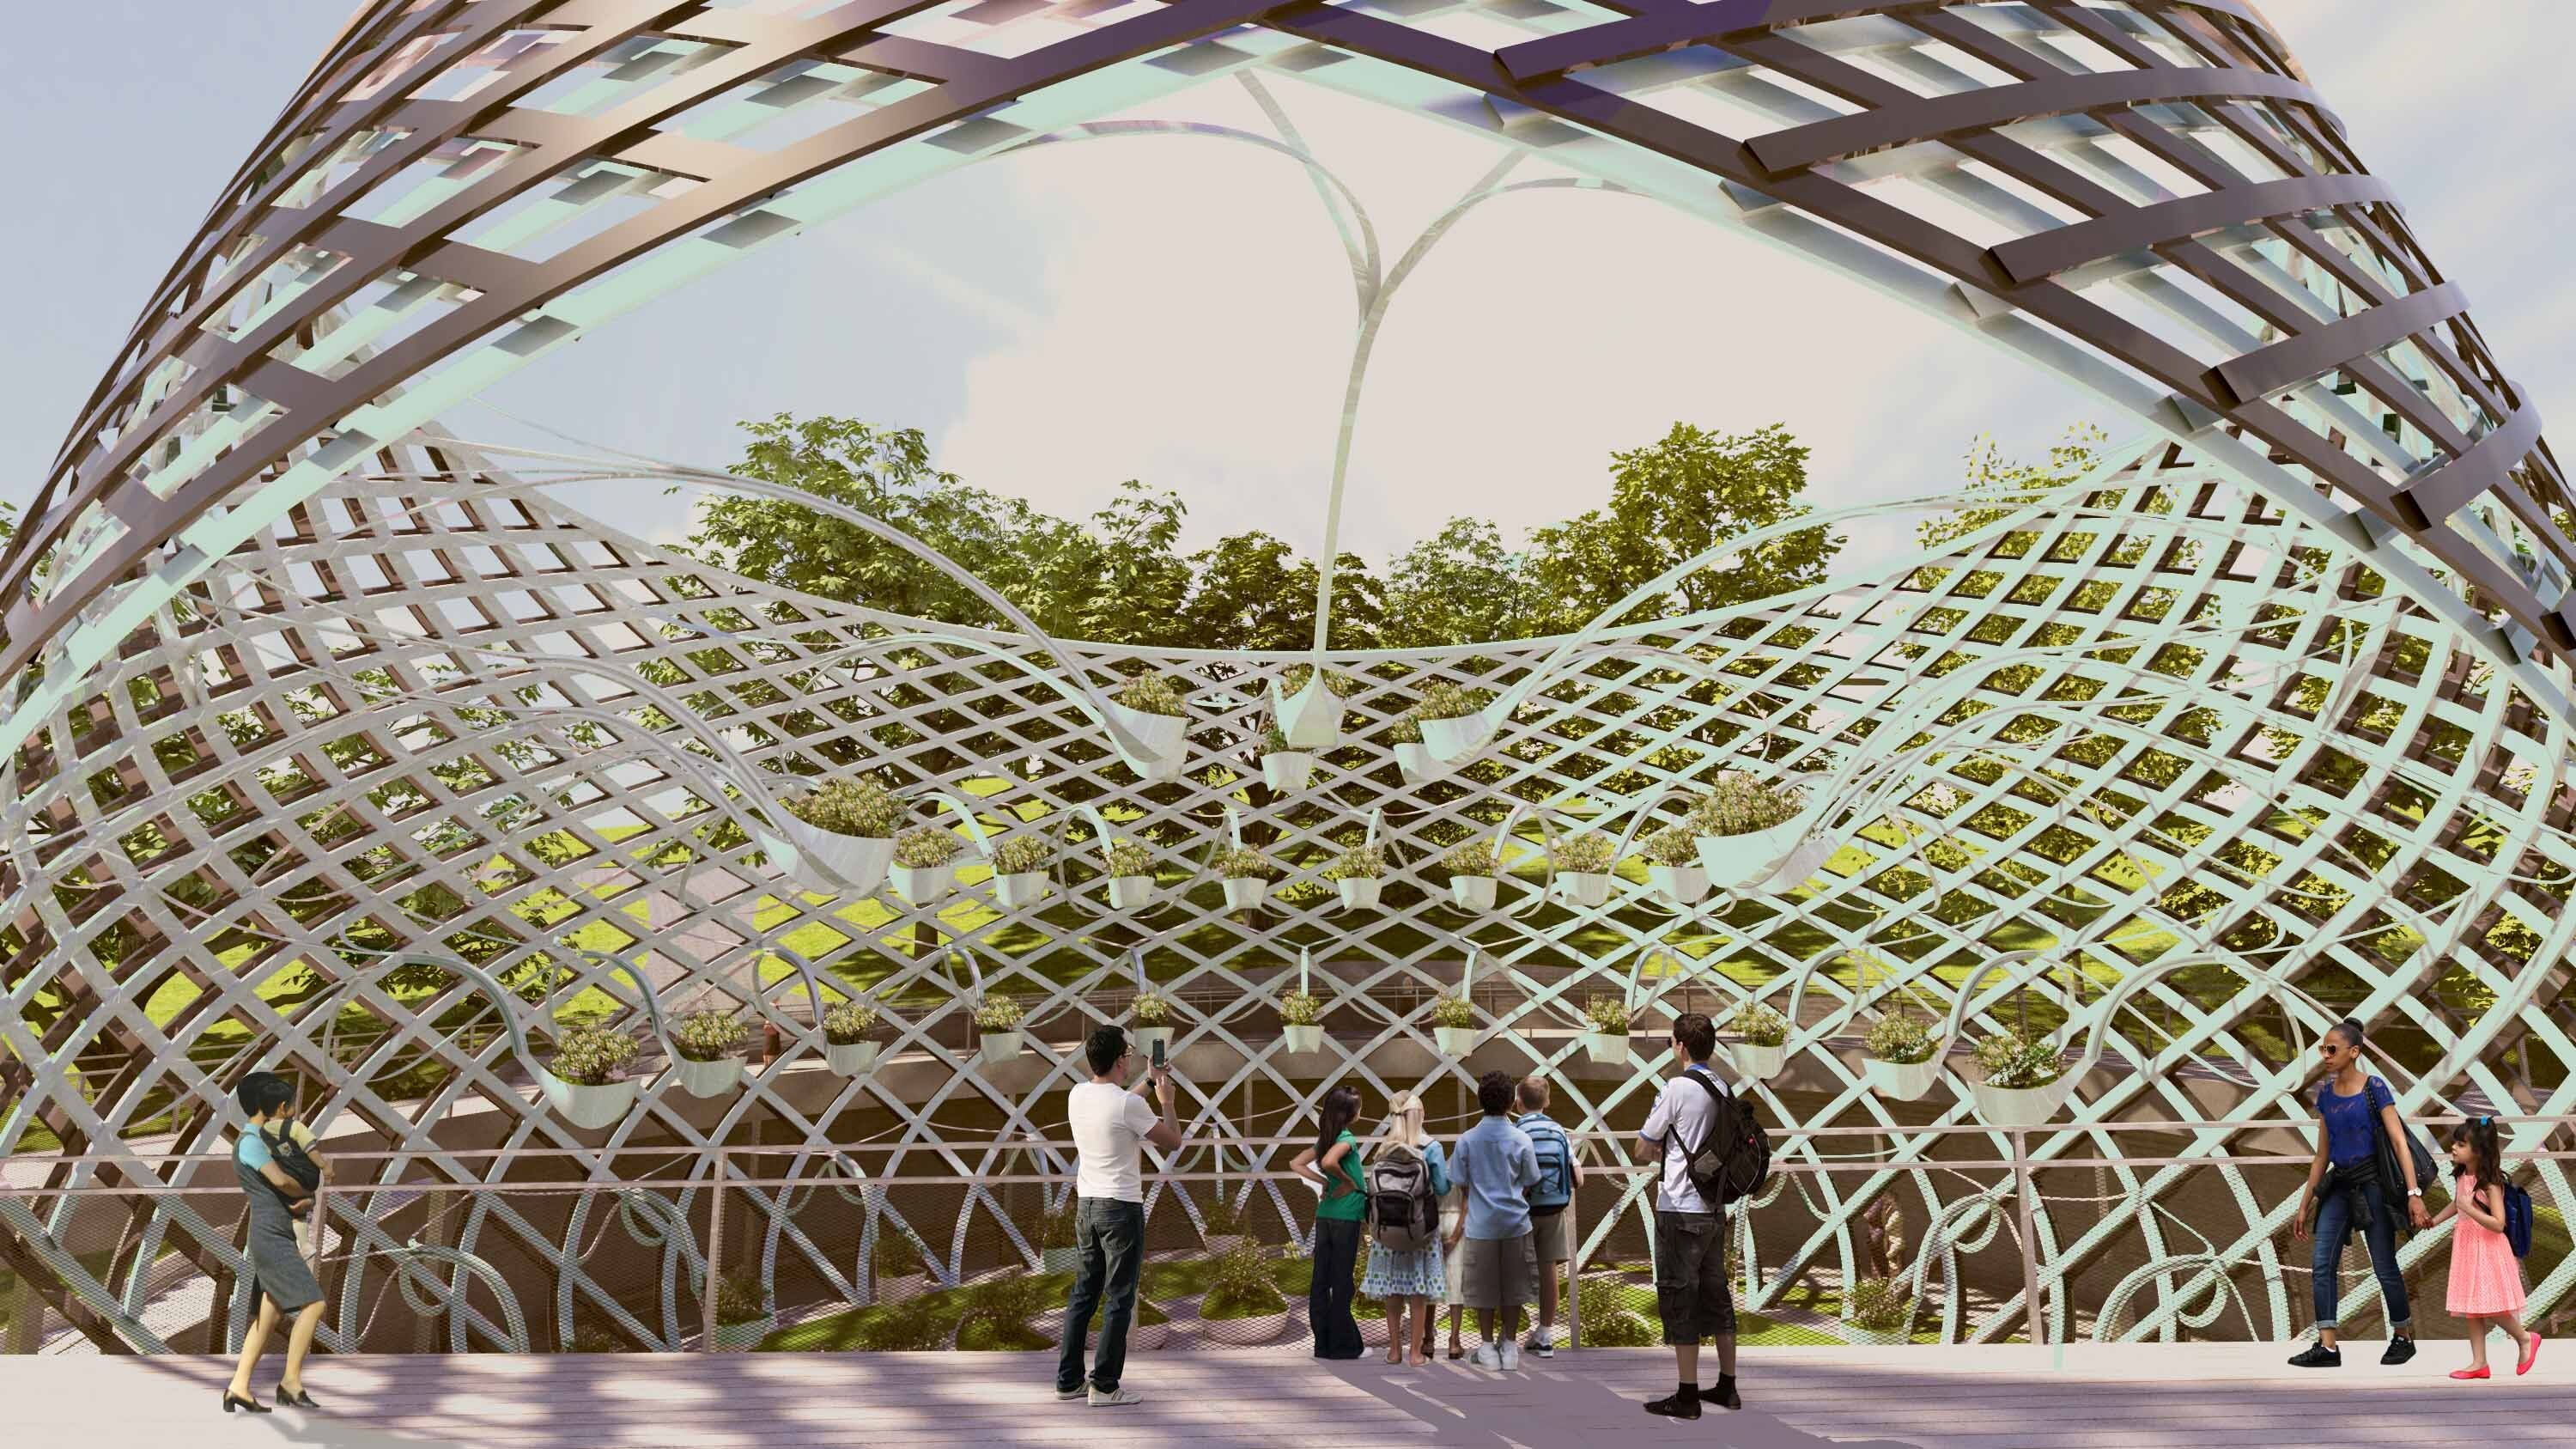 An artist's impression of one of the vessel-like structures, which will feature fragrant plants, to be built along the Sentosa Sensoryscape.